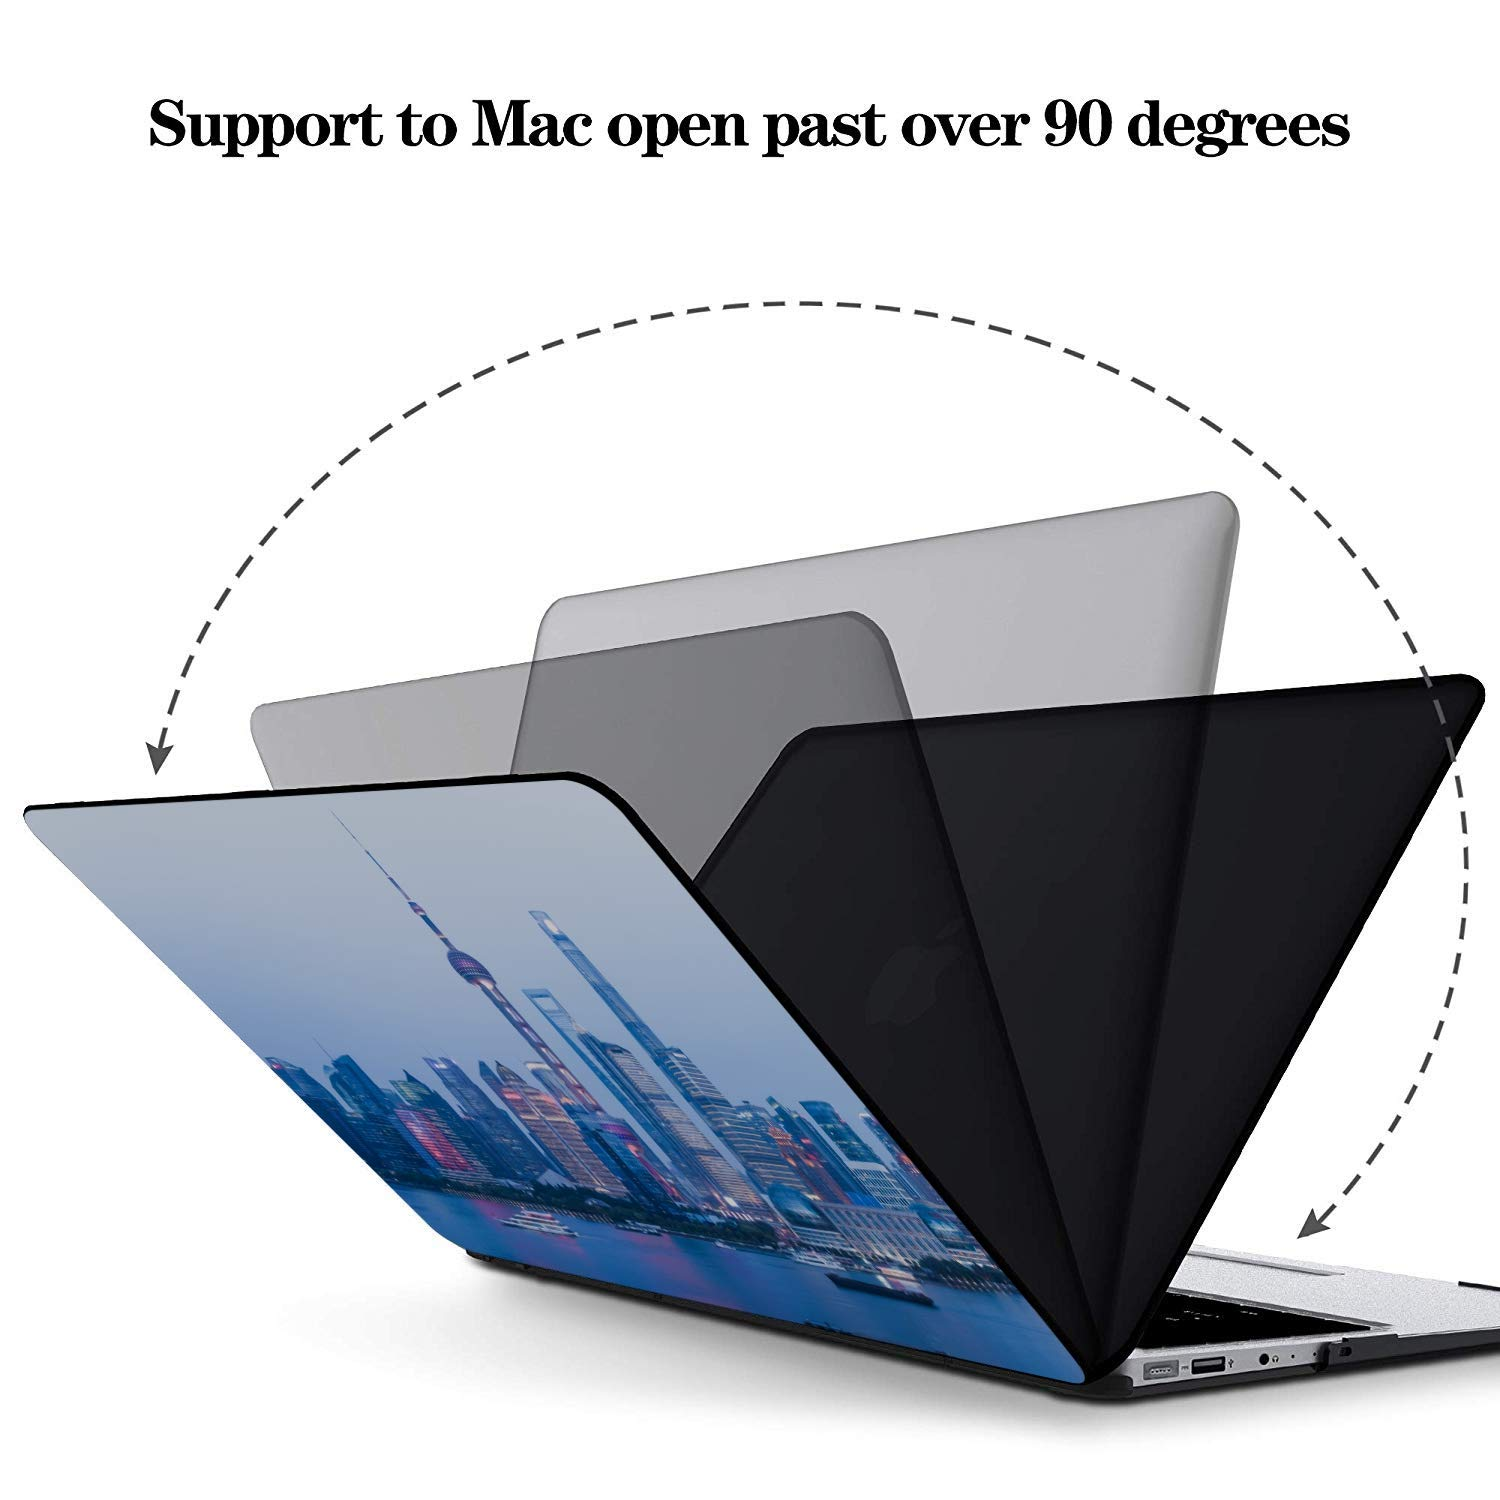 Laptop Pro Accessories Sign Travel Building Oriental Pearl Plastic Hard Shell Compatible Mac Air 11 Pro 13 15 MacBook Accessories Protection for MacBook 2016-2019 Version